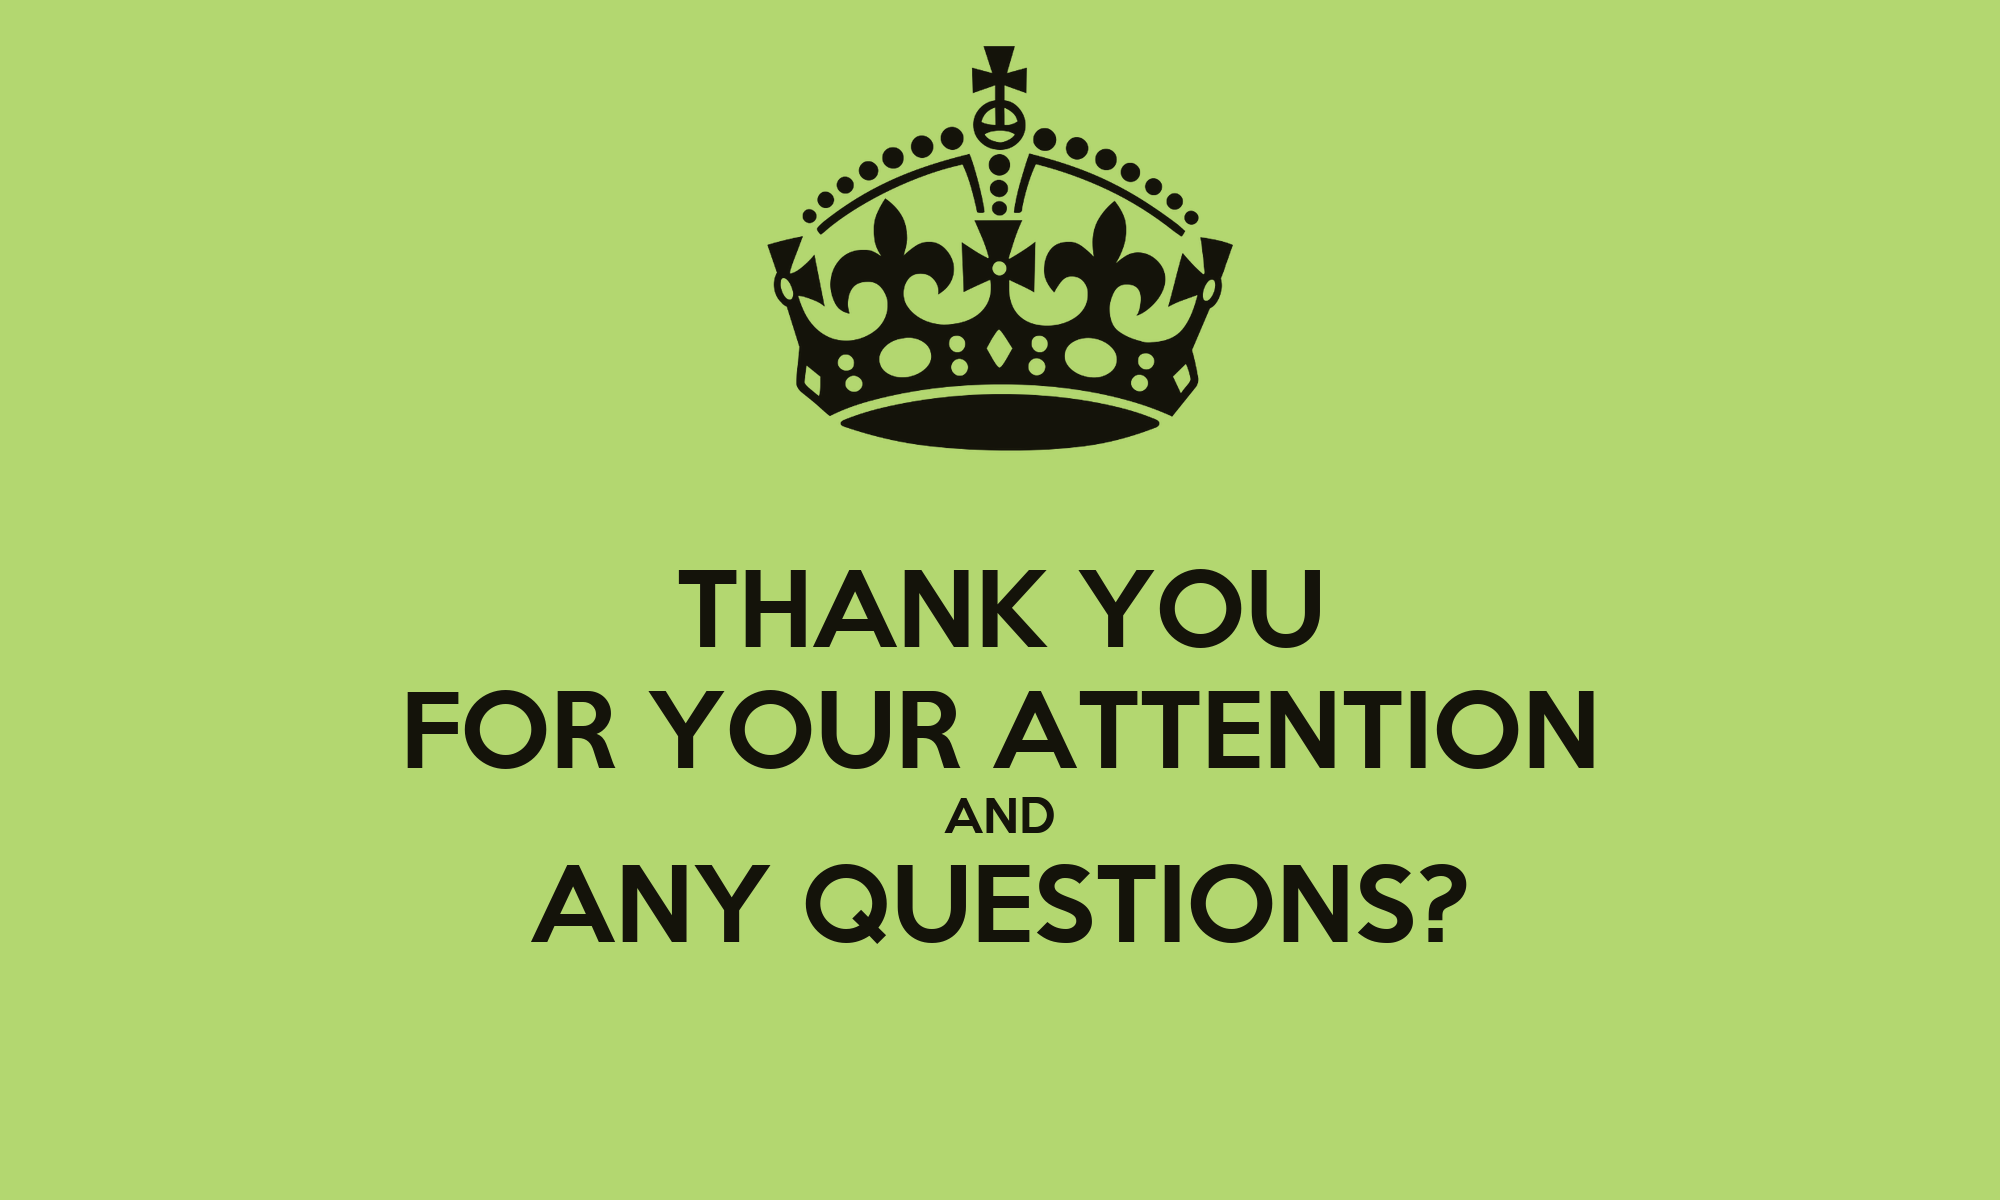 THANK YOU FOR YOUR ATTENTION AND ANY QUESTIONS? Poster ...